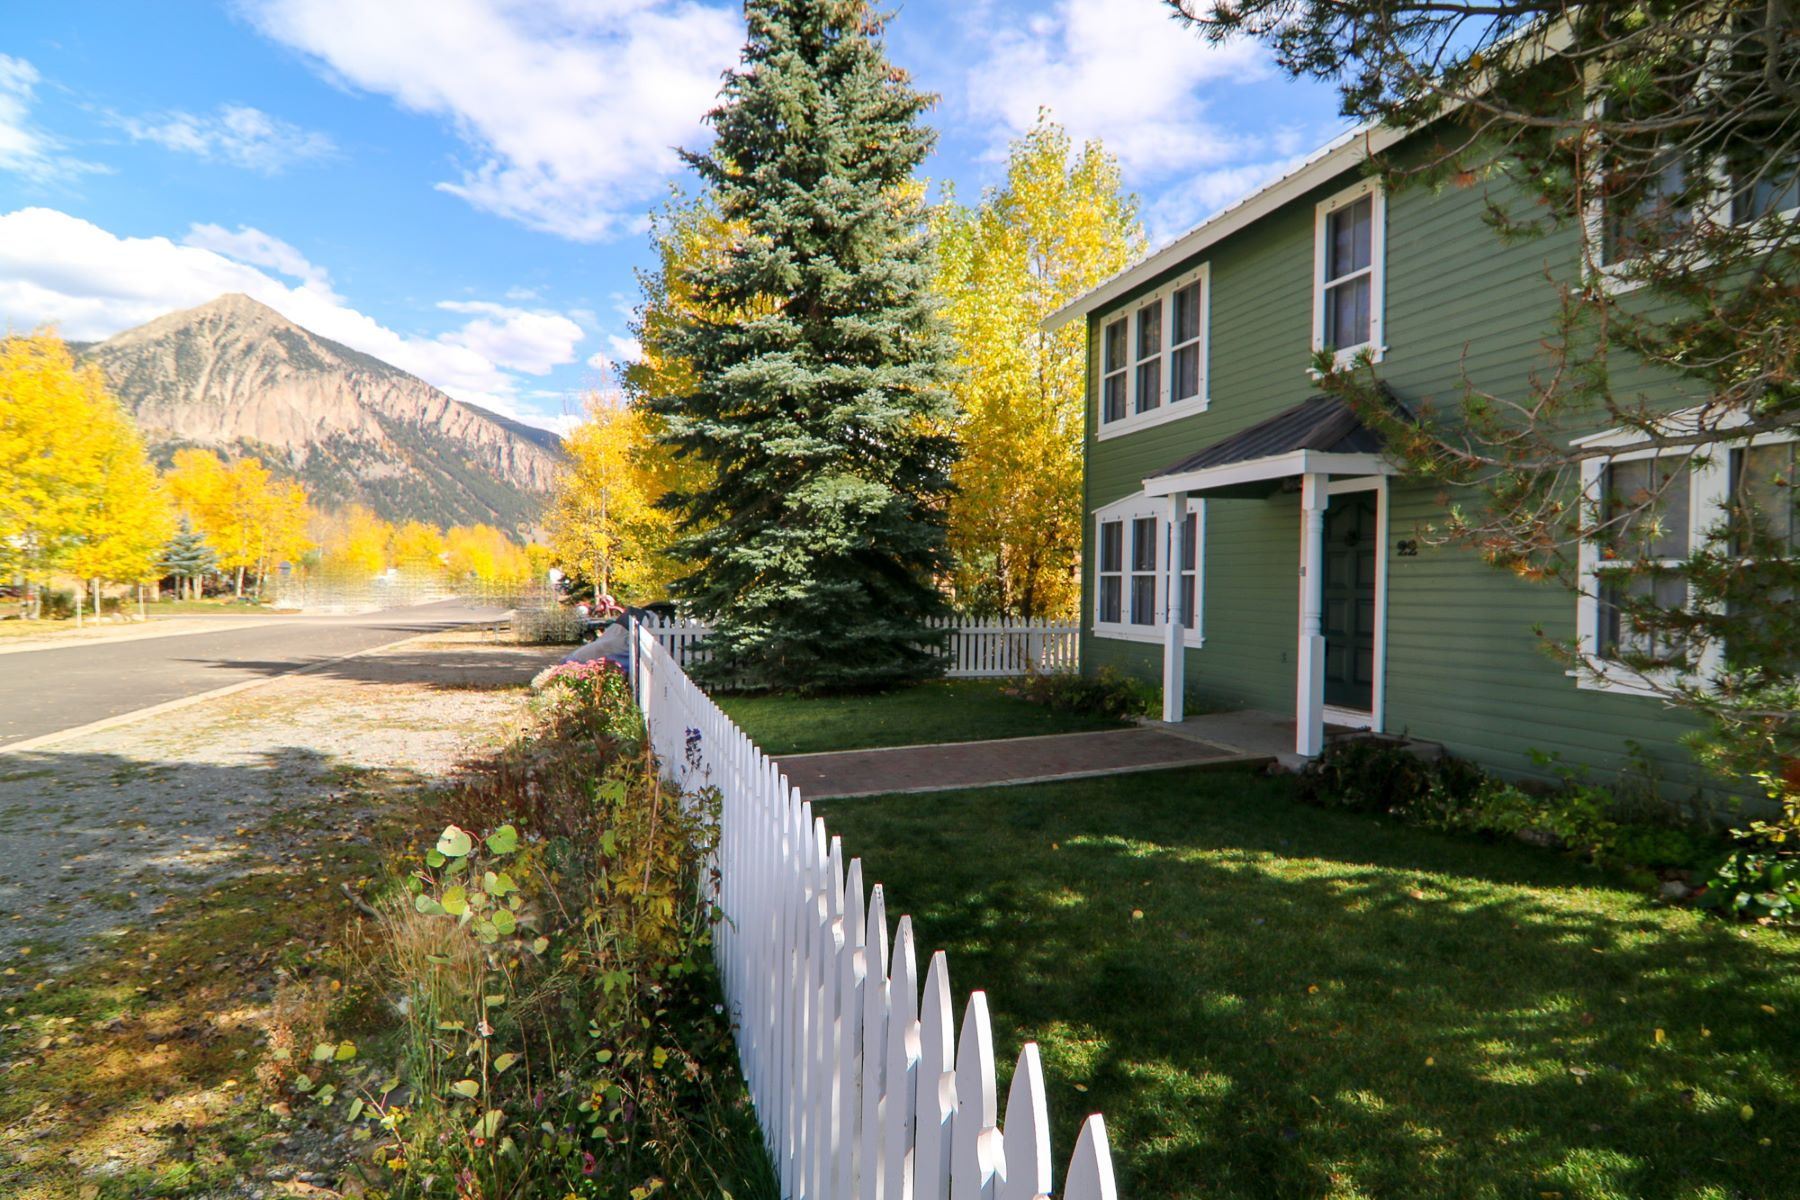 Single Family Home for Sale at Coveted West End Location 22 Teocalli Ave Crested Butte, Colorado, 81224 United States